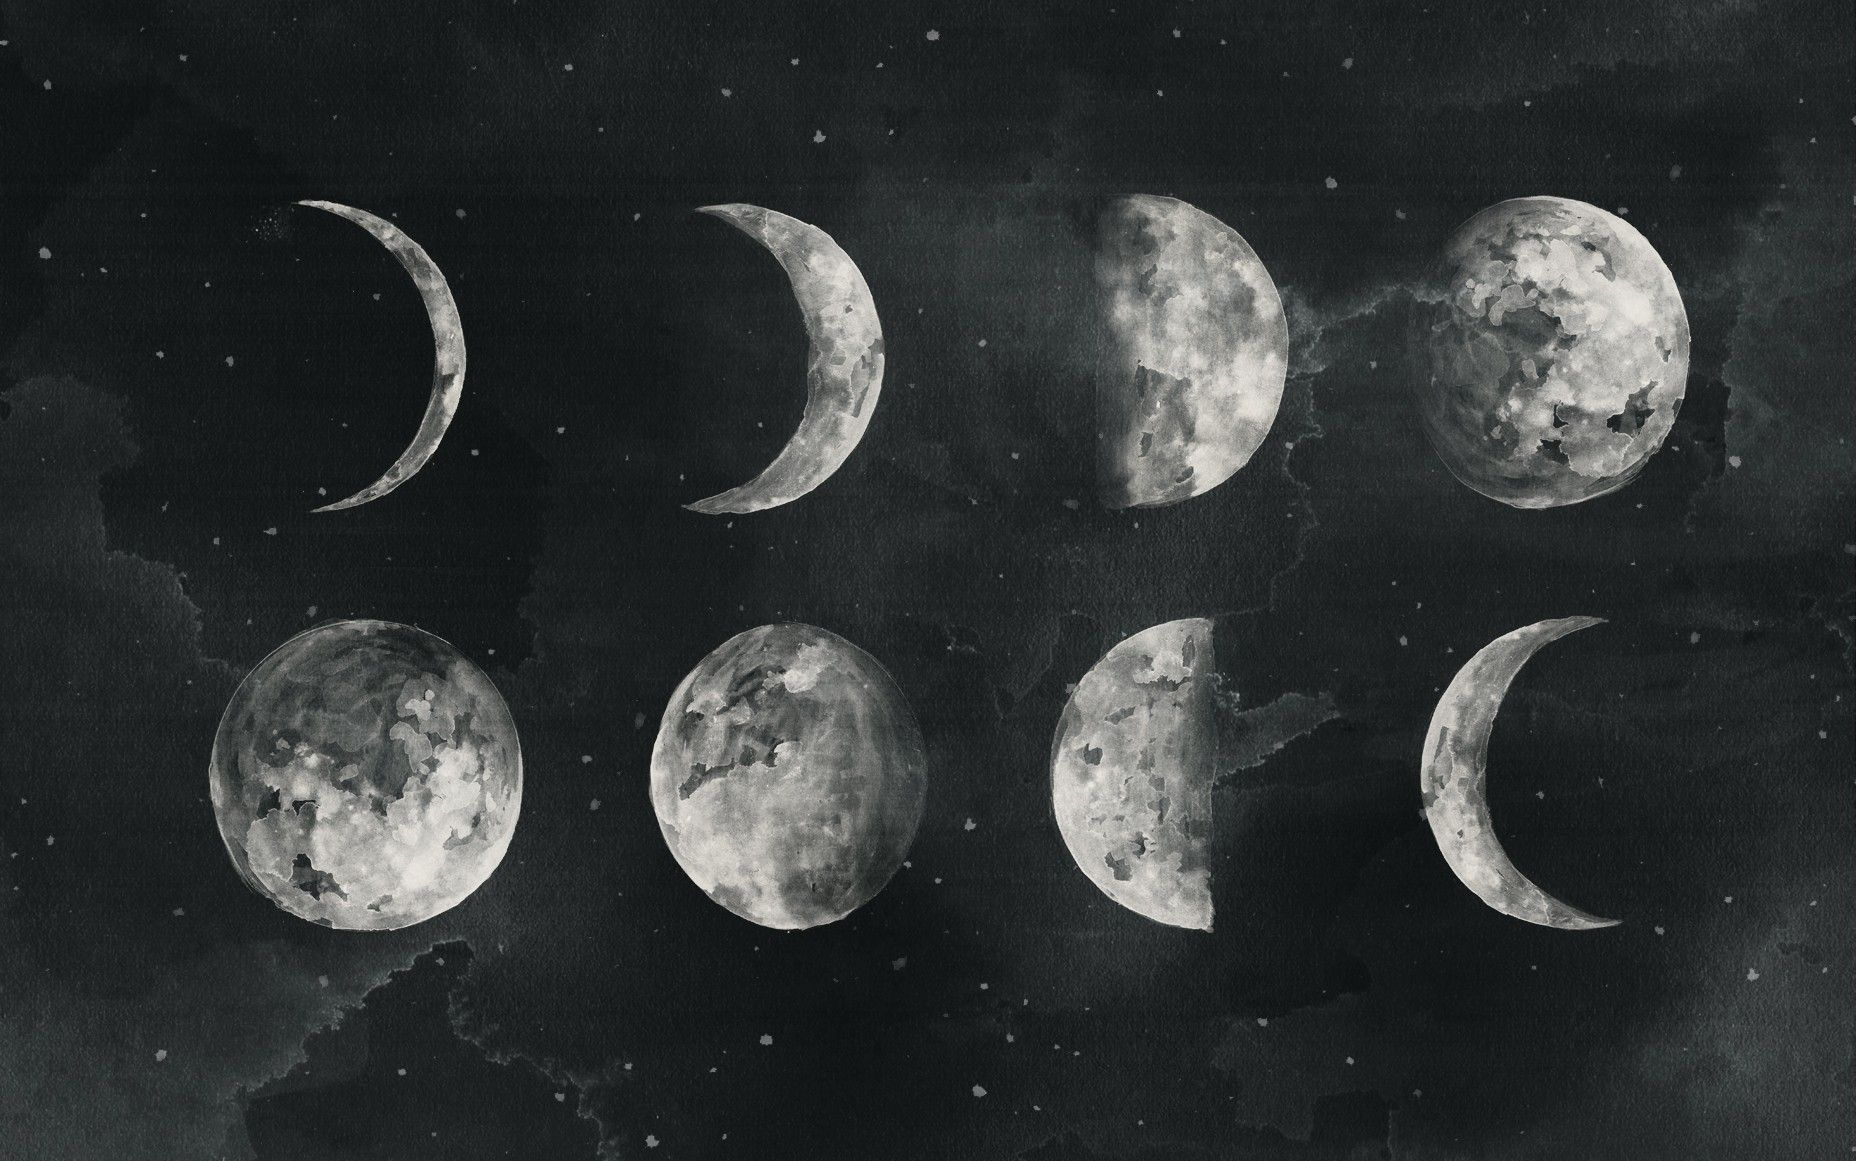 Moon Phases 4k Wallpapers - Top Free Moon Phases 4k Backgrounds -  WallpaperAccess